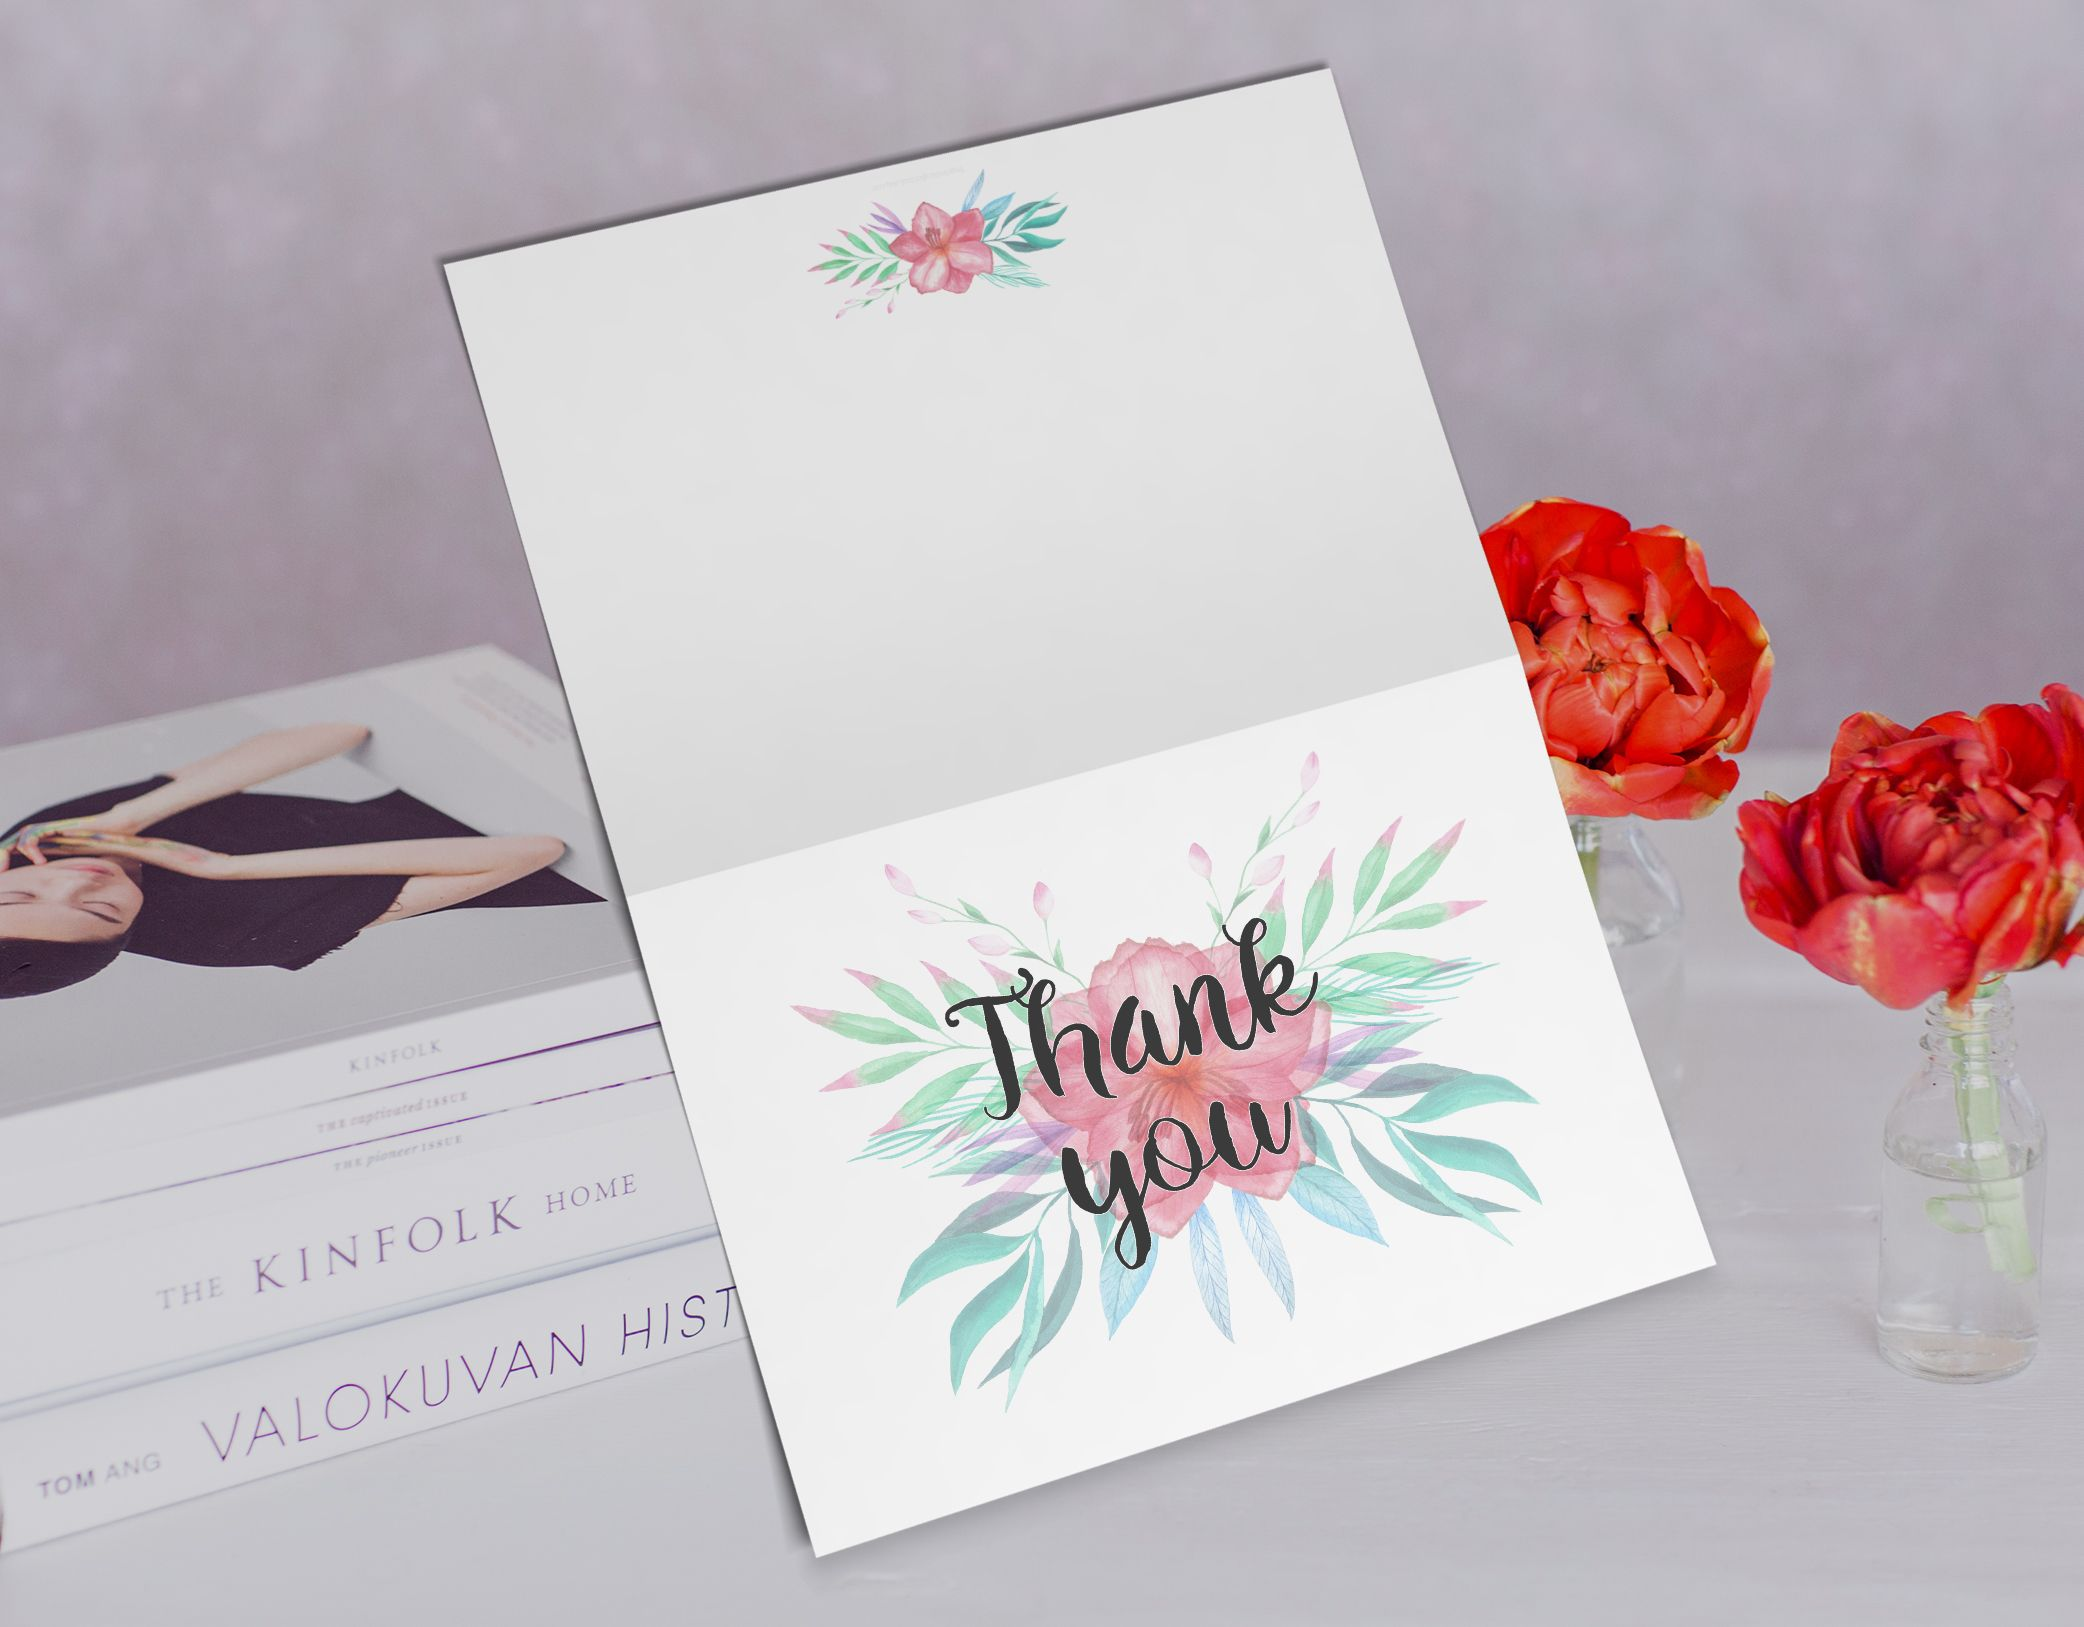 6 pack of thank you cards in english and spanish, totaling